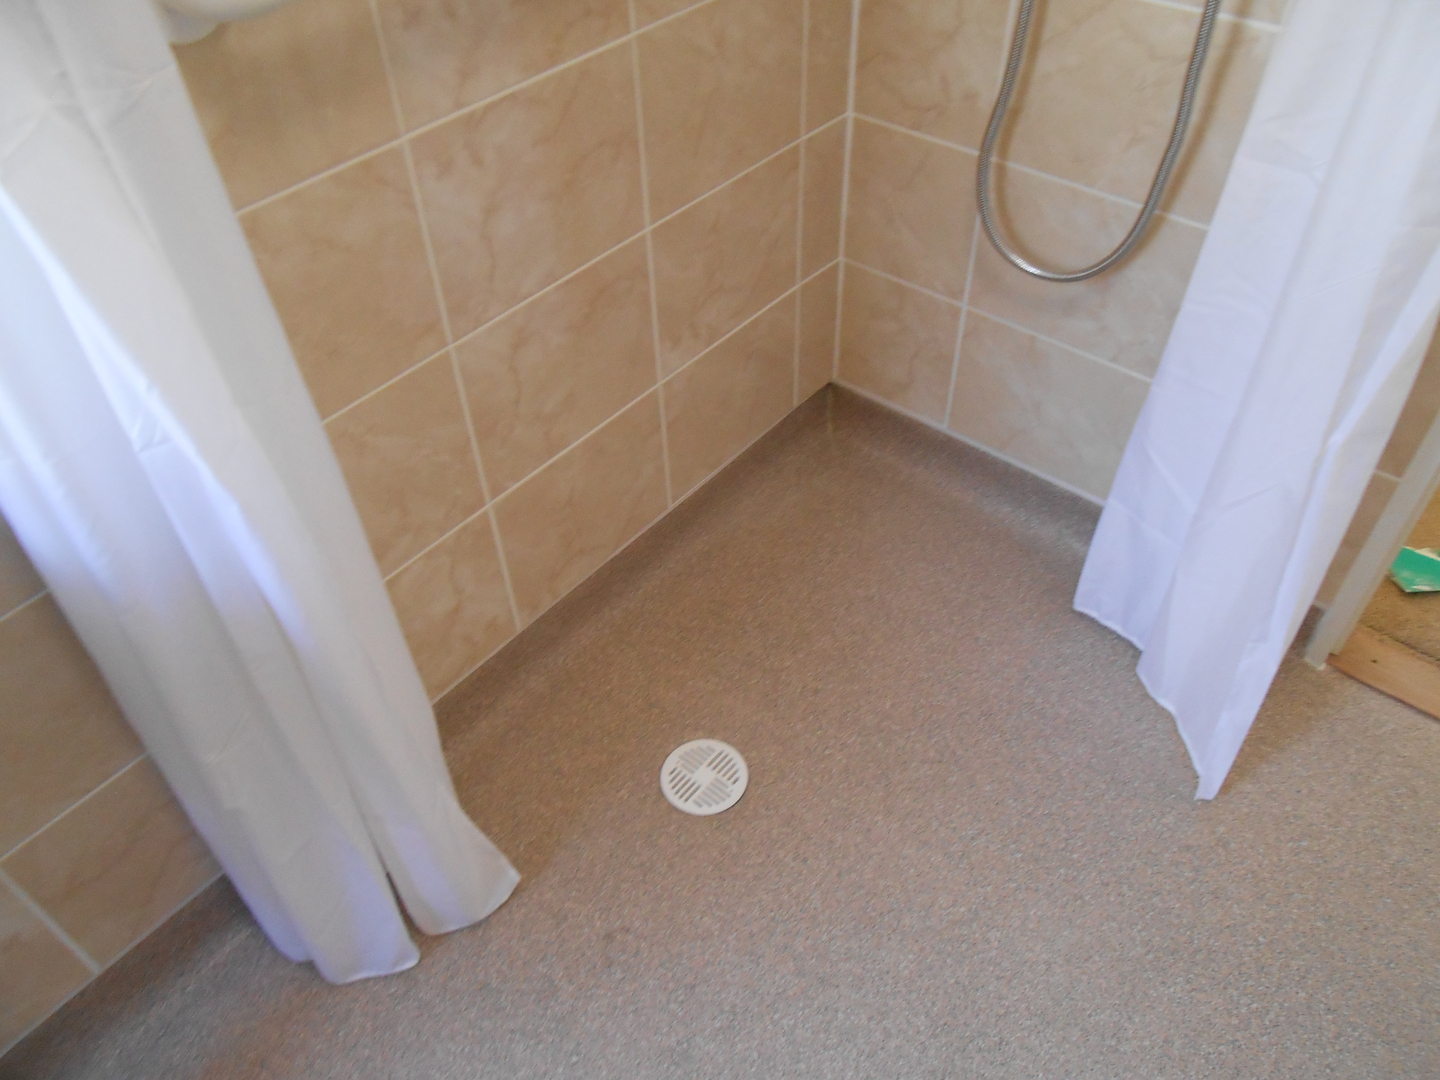 Wet rooms refurbishments school renovations disabled access wet rooms refurbishments school renovations disabled access access ramps dailygadgetfo Image collections